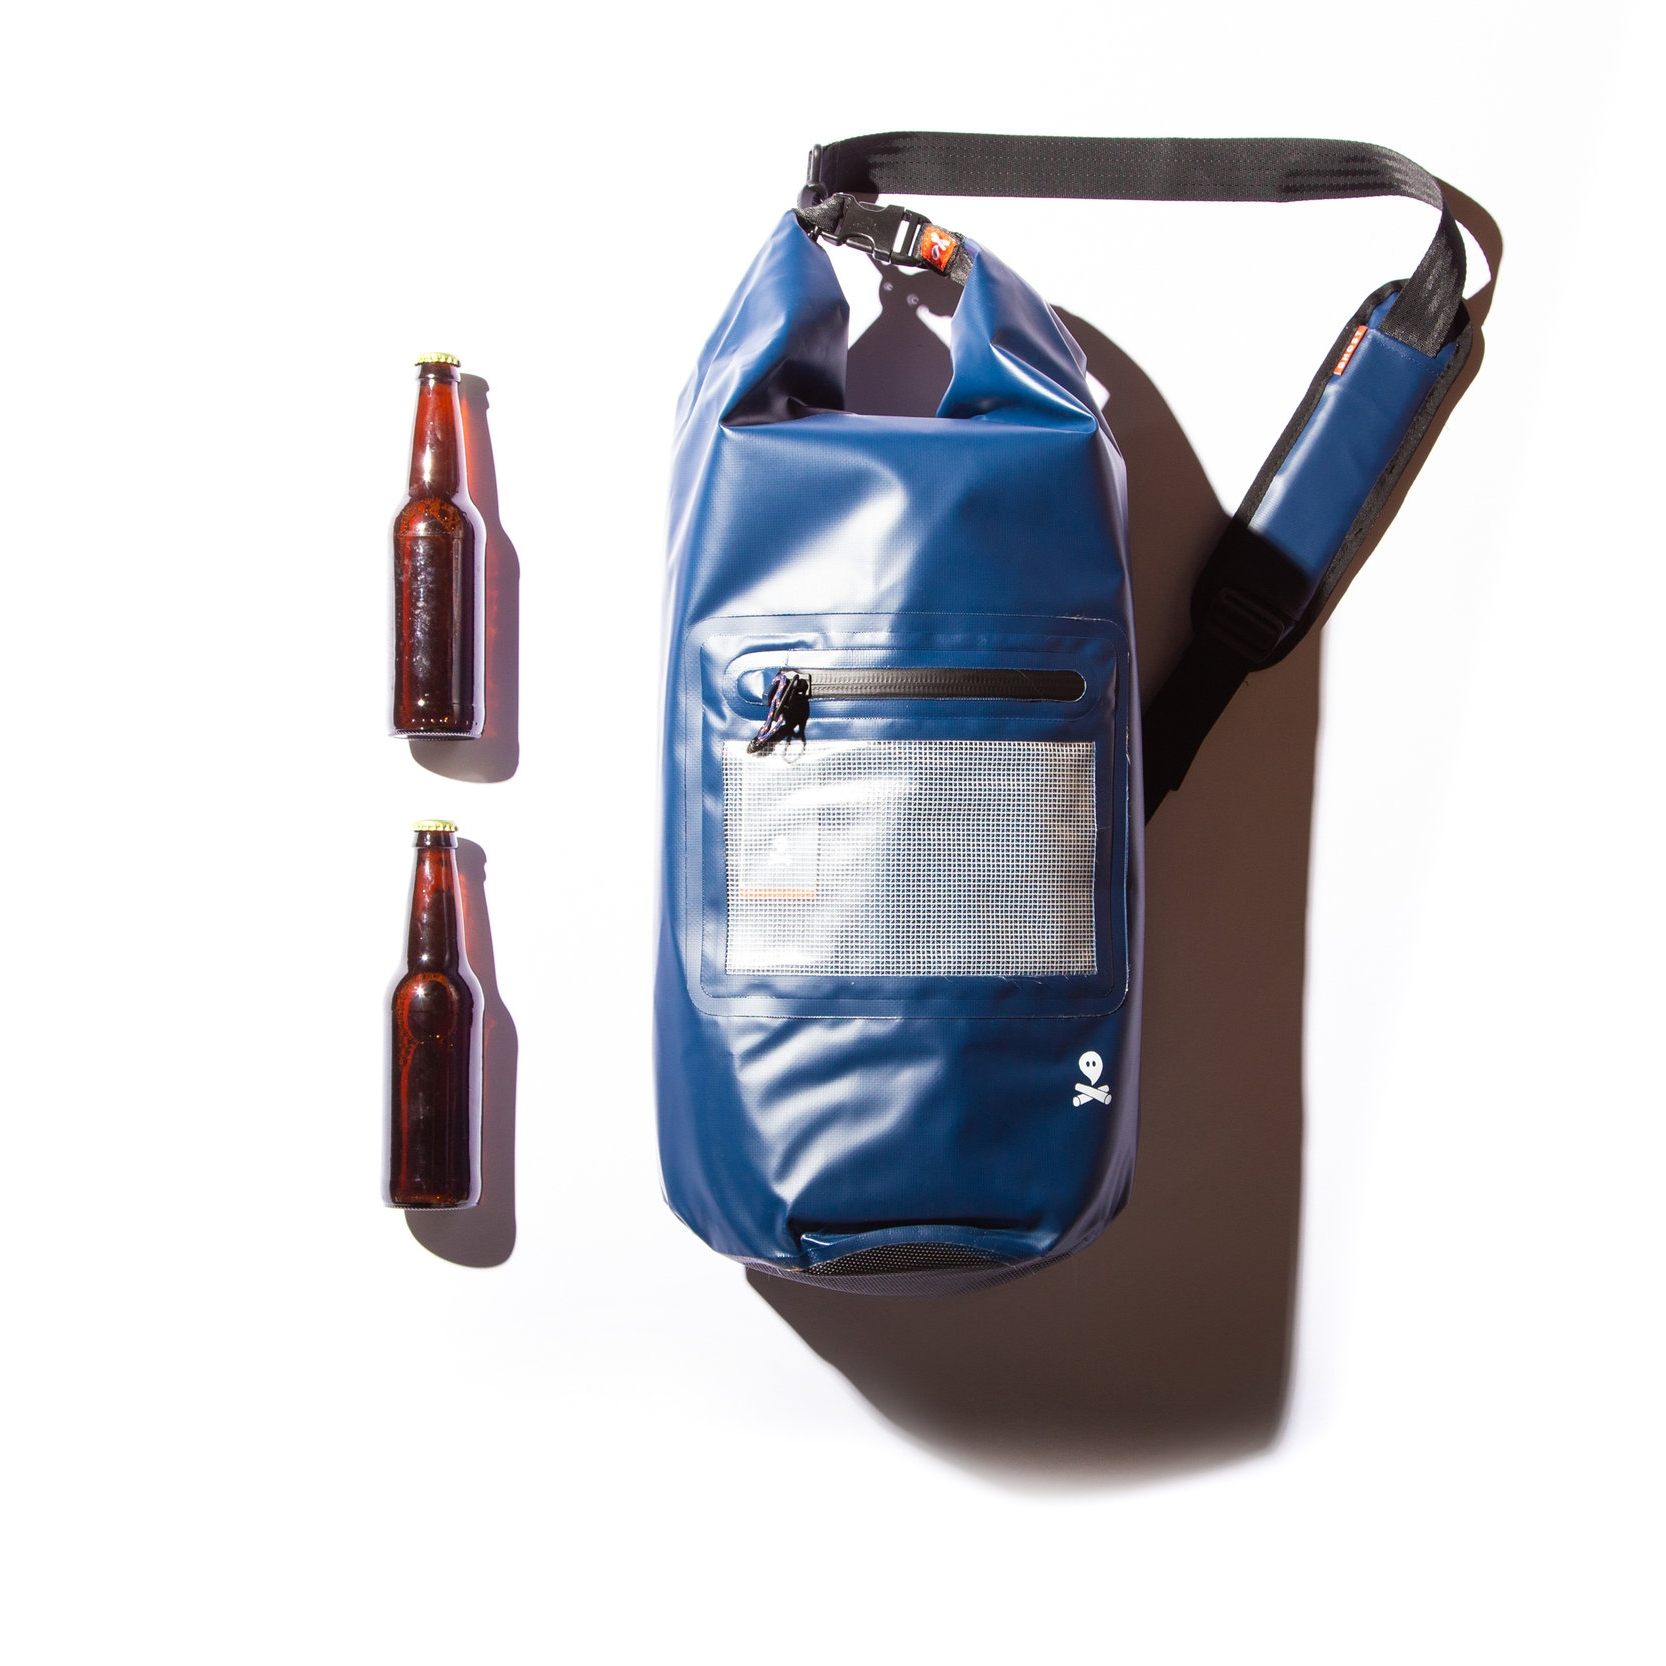 $139 - Undercover Cool Bag